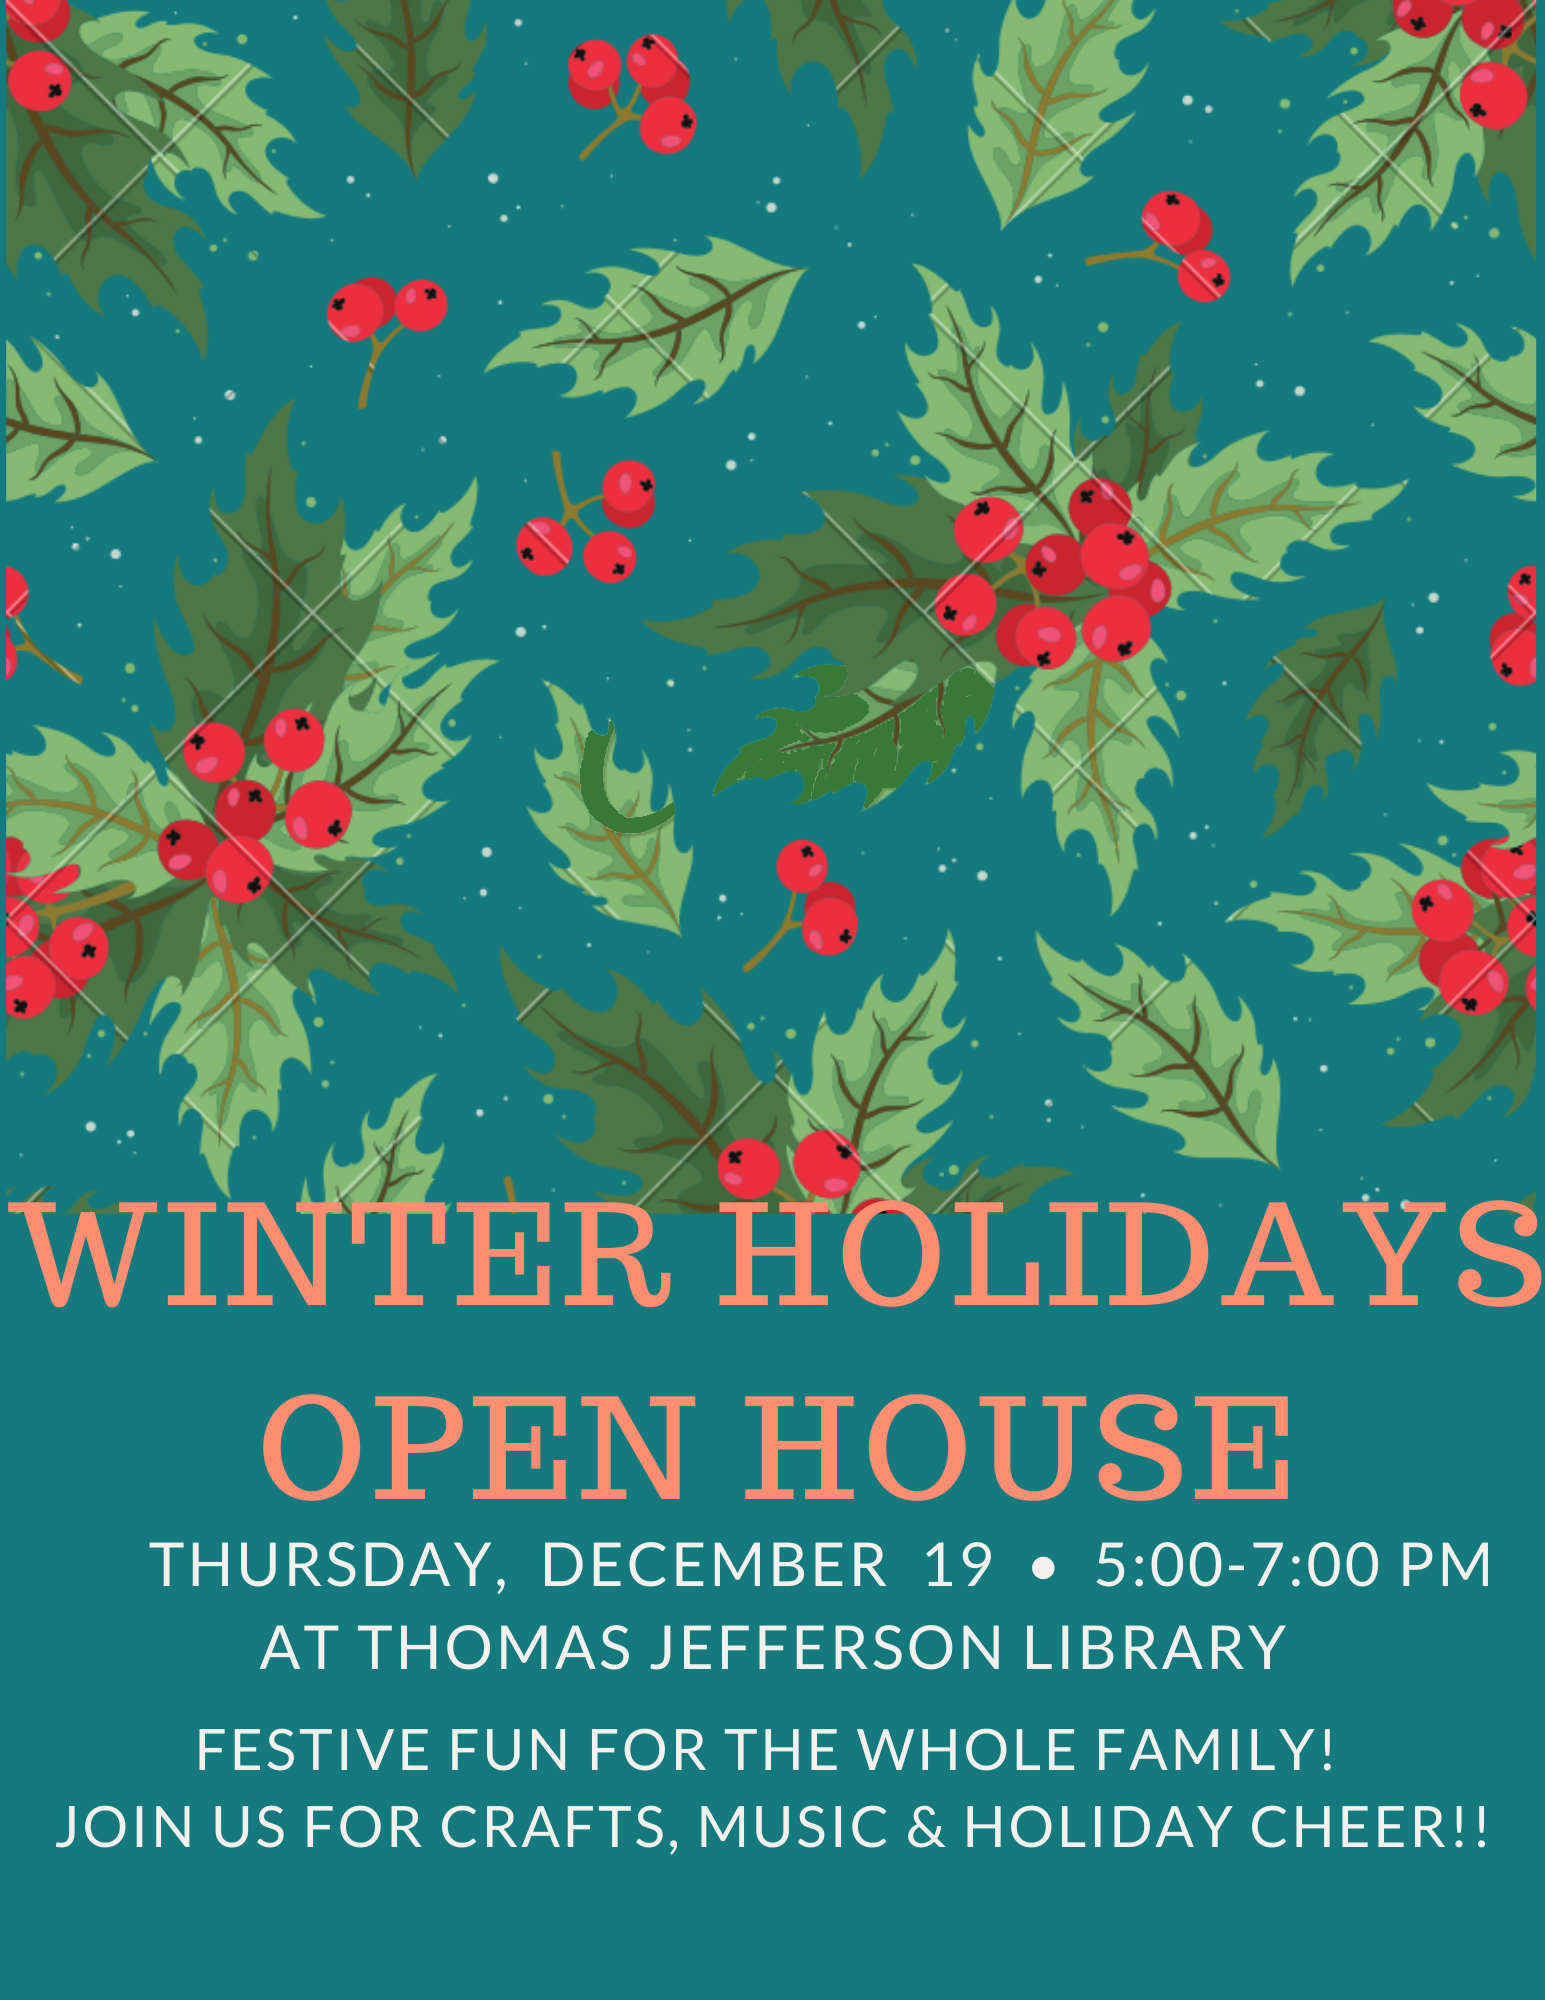 Winter Holidays Open House